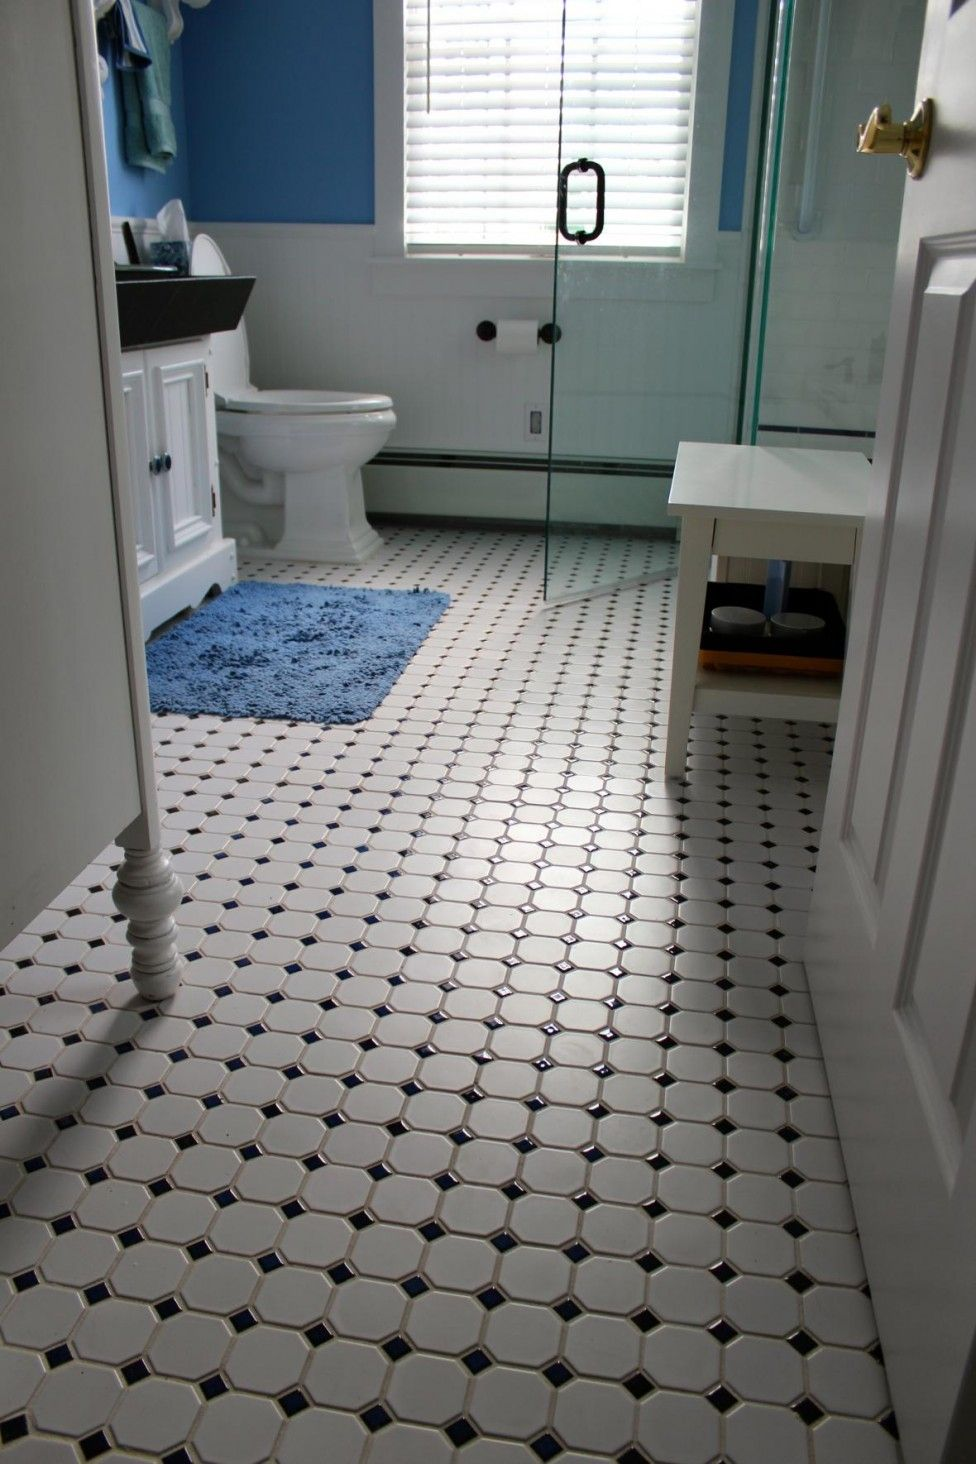 Appealing black and white bathrooms tile octagon with for Designer bathroom flooring